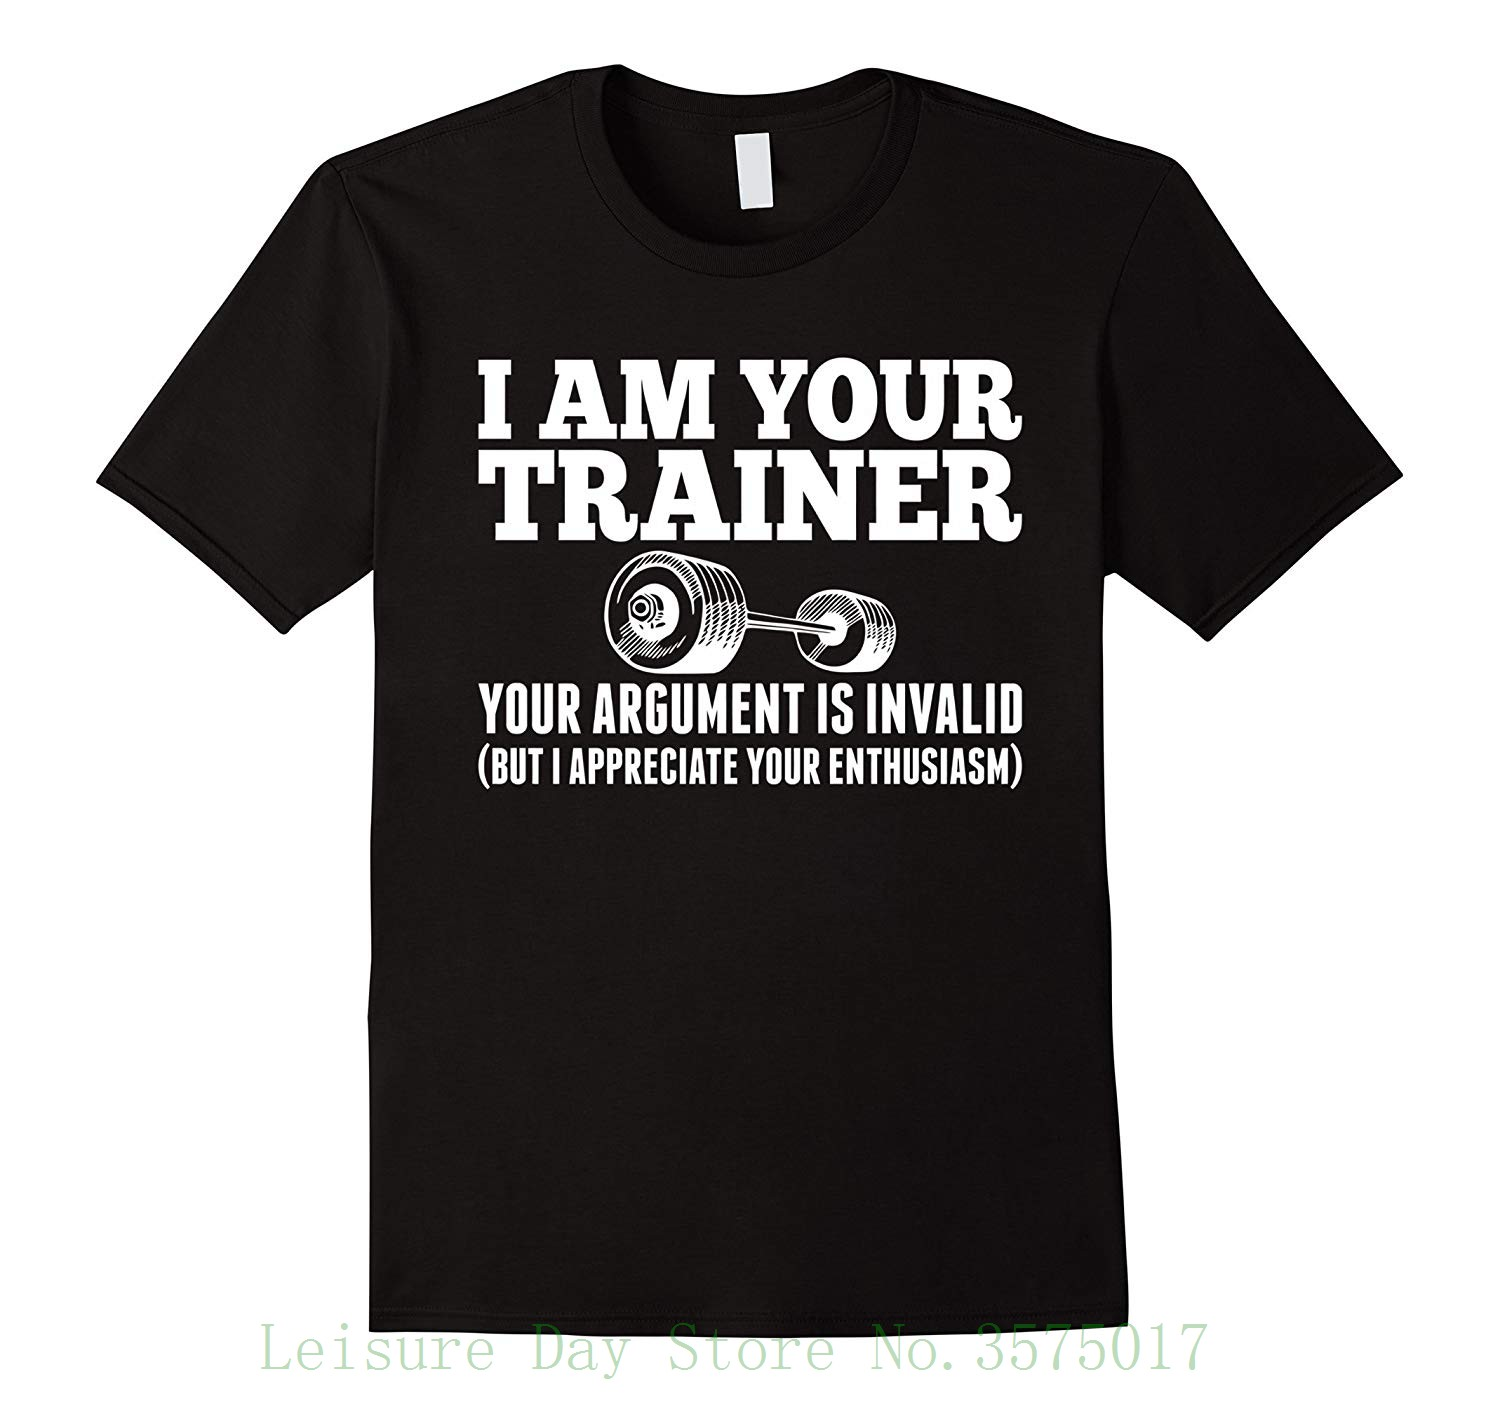 d8d6a0cd Personal Trainer Tshirt - I Am Your Trainer Funny Tshirt Printed Men T  Shirt Clothes